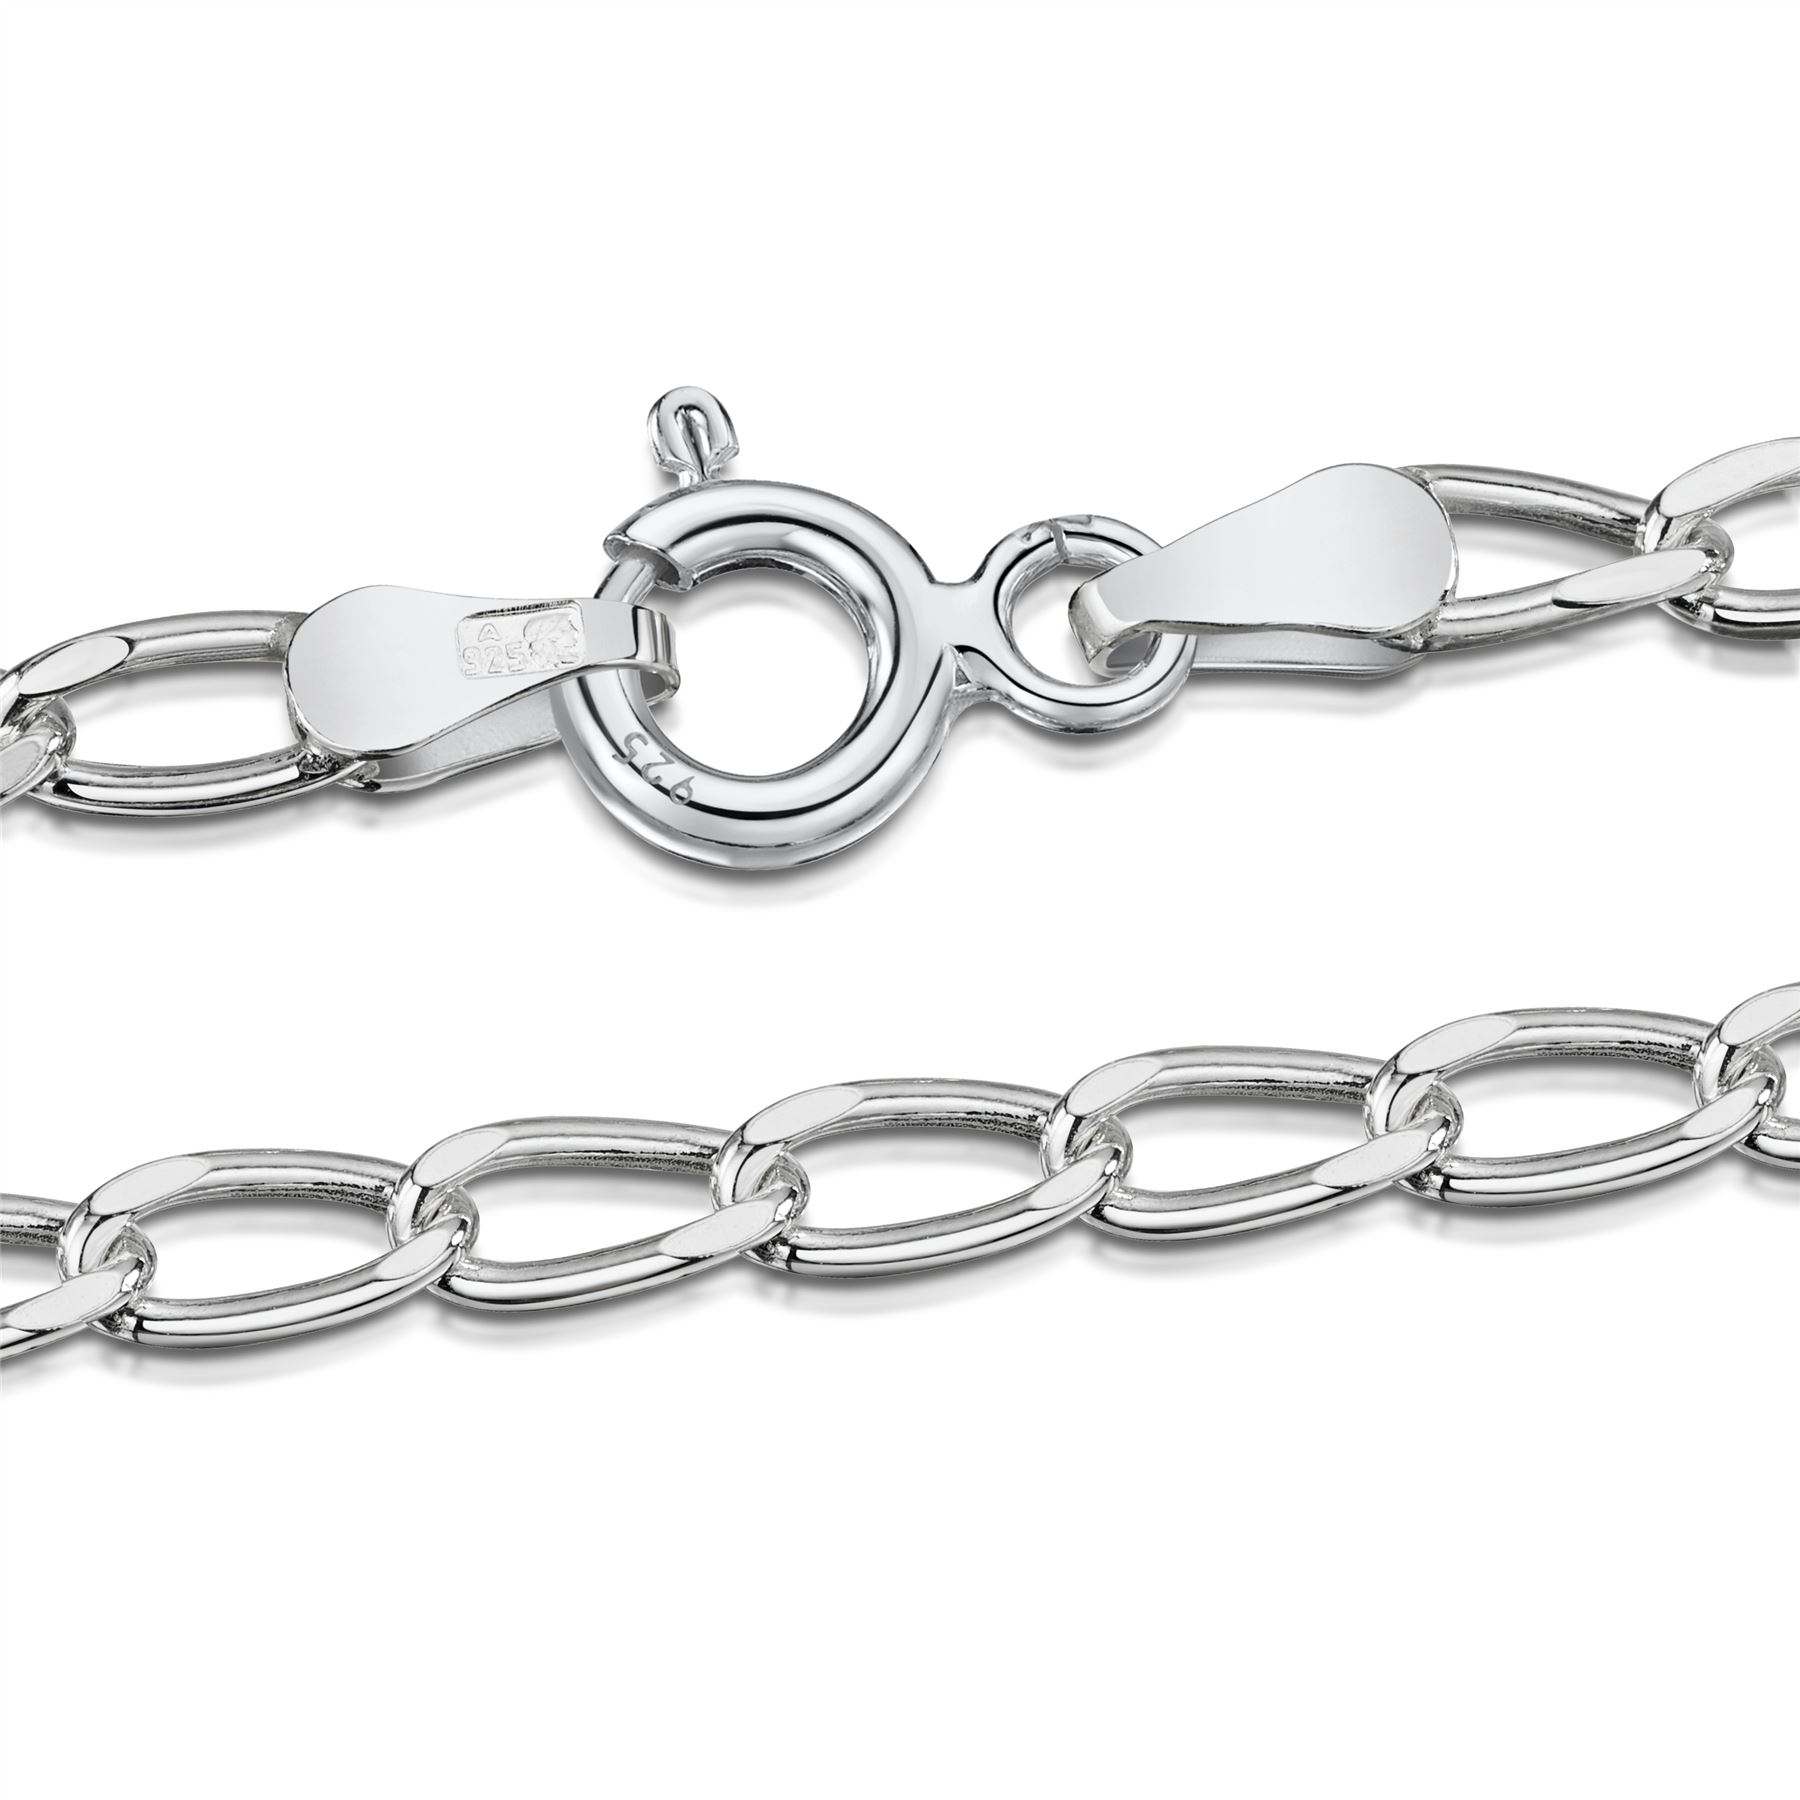 Amberta-Jewelry-Genuine-925-Sterling-Silver-Bracelet-Bangle-Chain-Made-in-Italy thumbnail 73